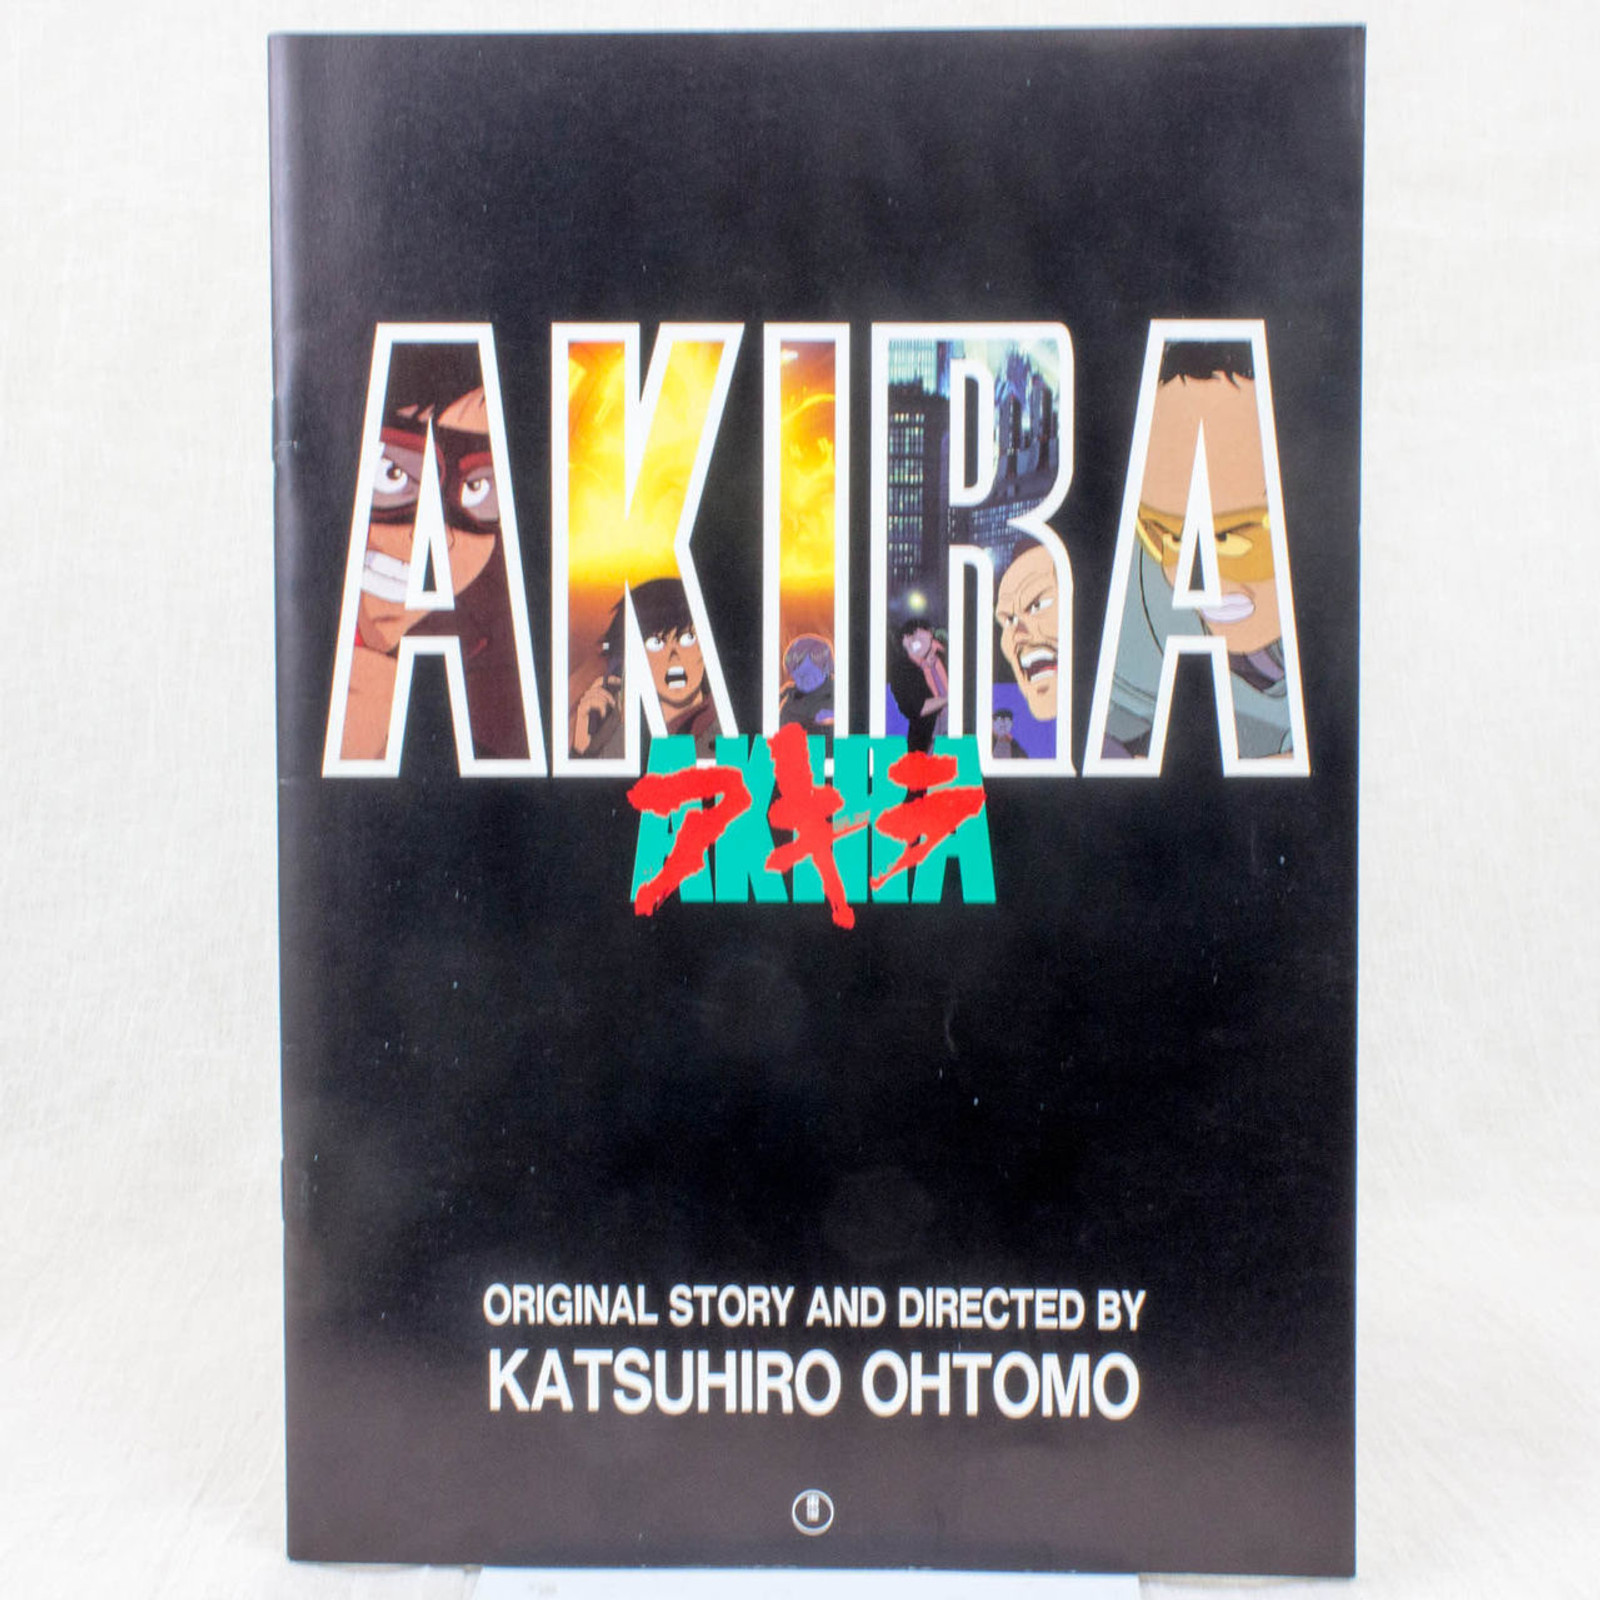 AKIRA Movie Program Art Book 1986 KATSUHIRO OTOMO JAPAN ANIME MANGA